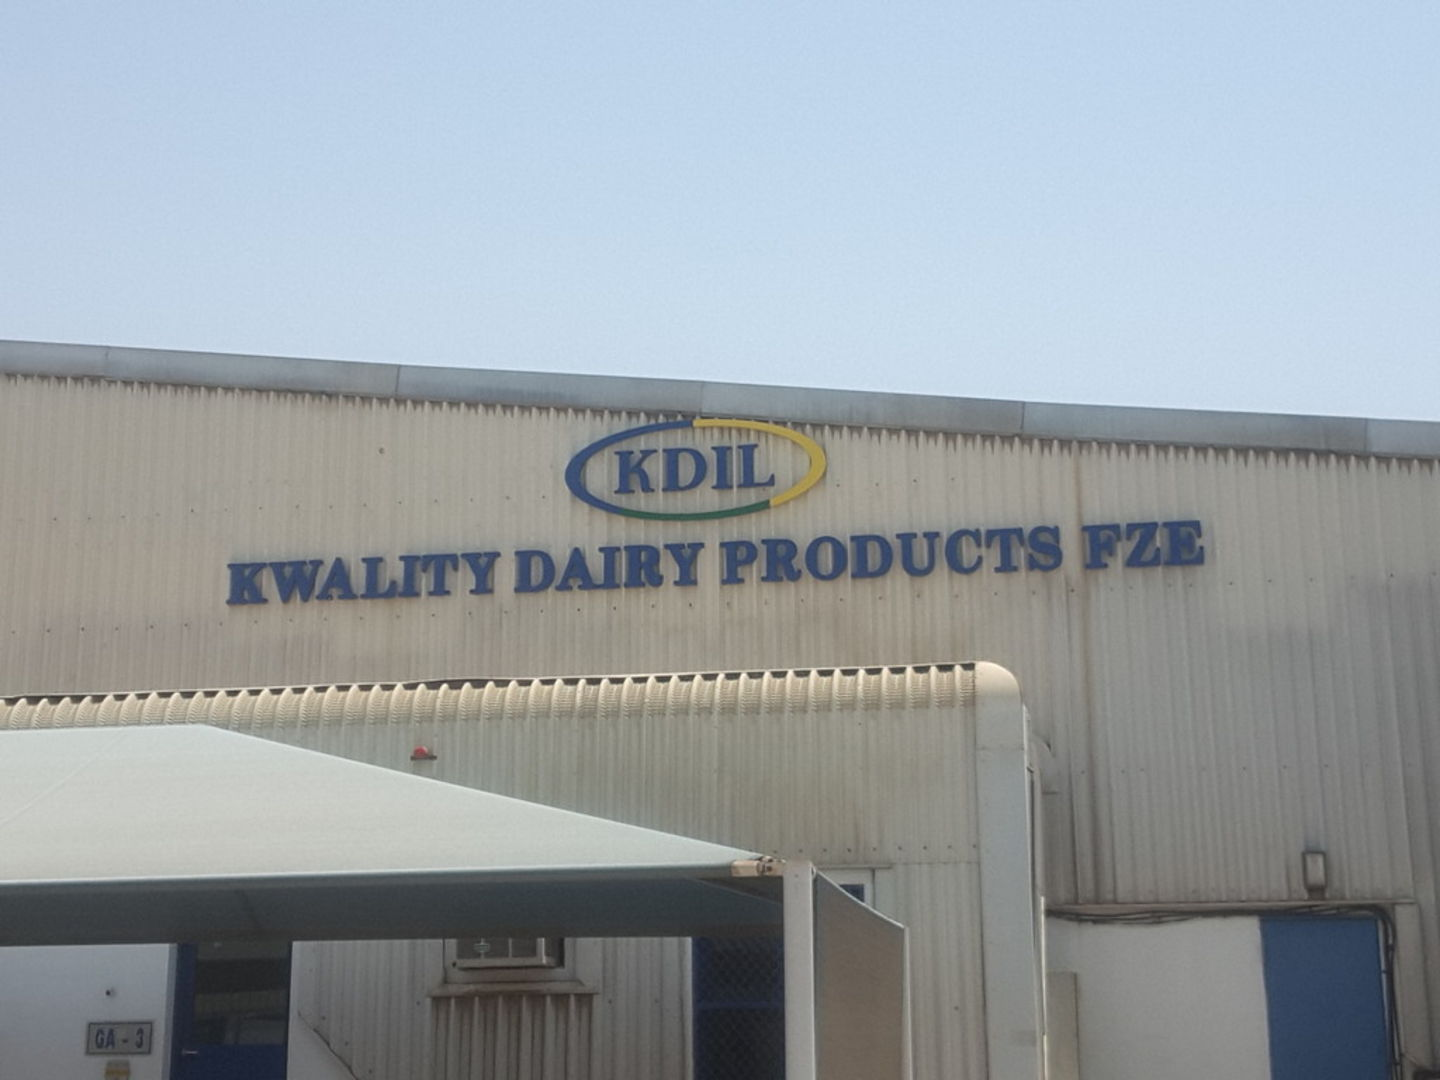 HiDubai-business-kwality-dairy-products-fze-b2b-services-distributors-wholesalers-jebel-ali-free-zone-mena-jebel-ali-dubai-2